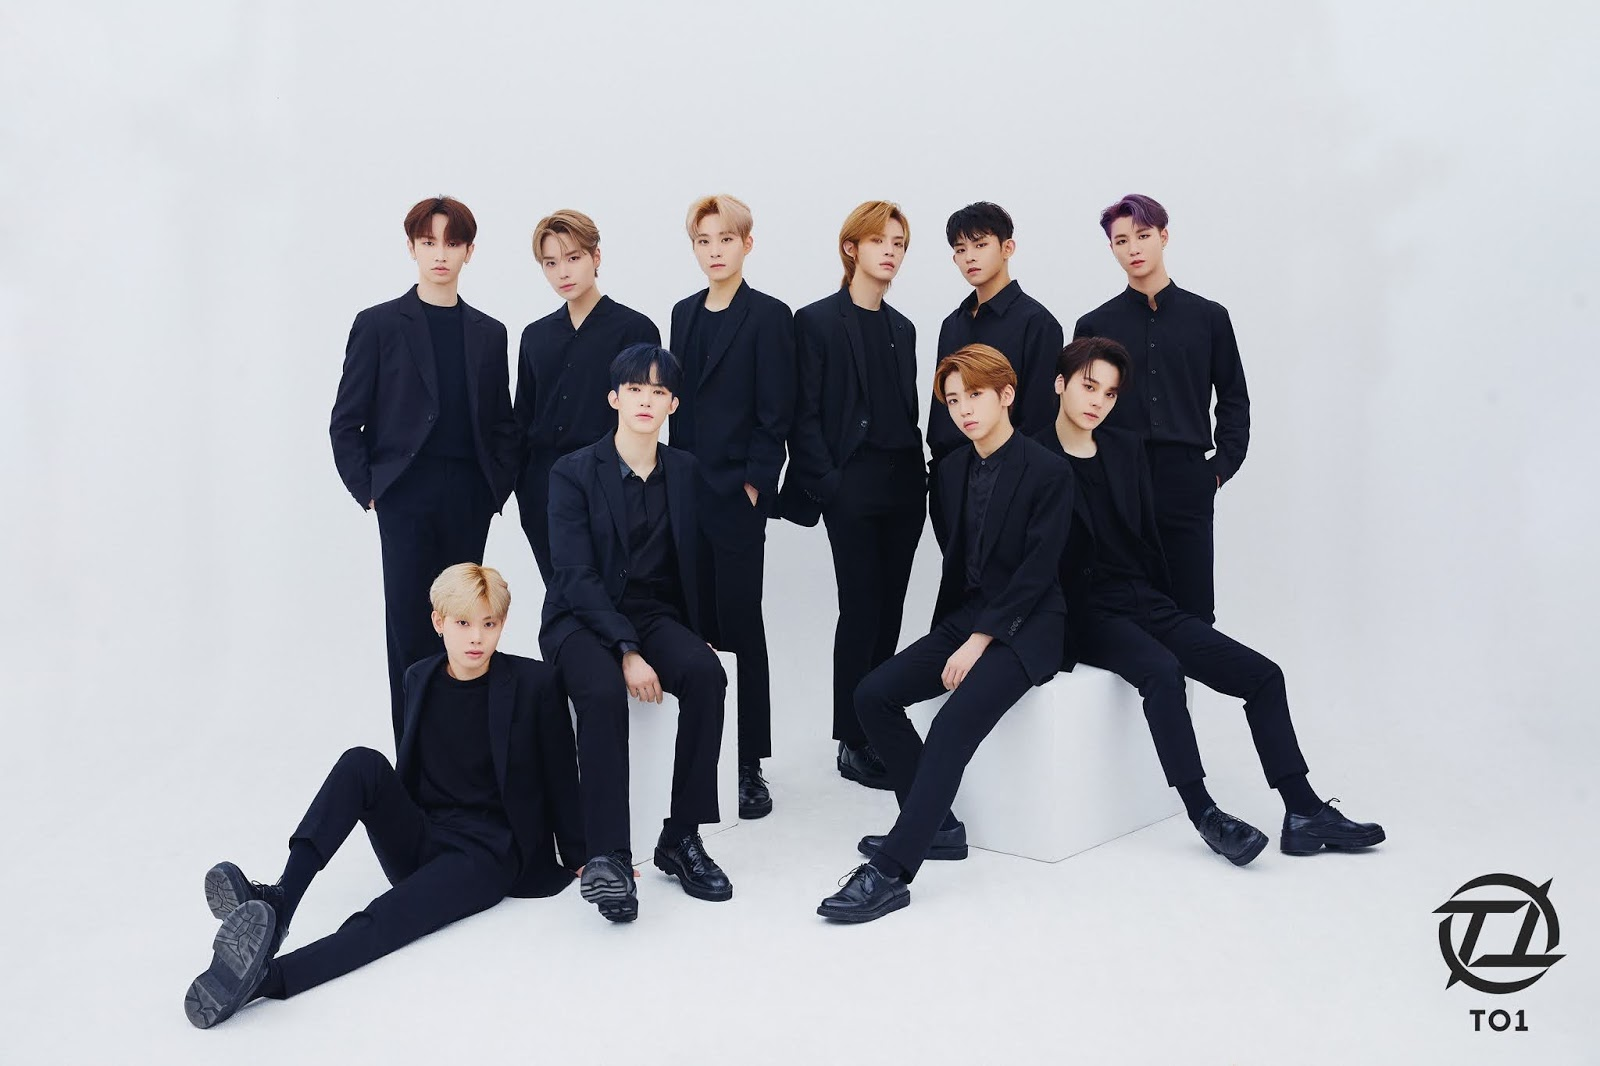 to1 official photo group